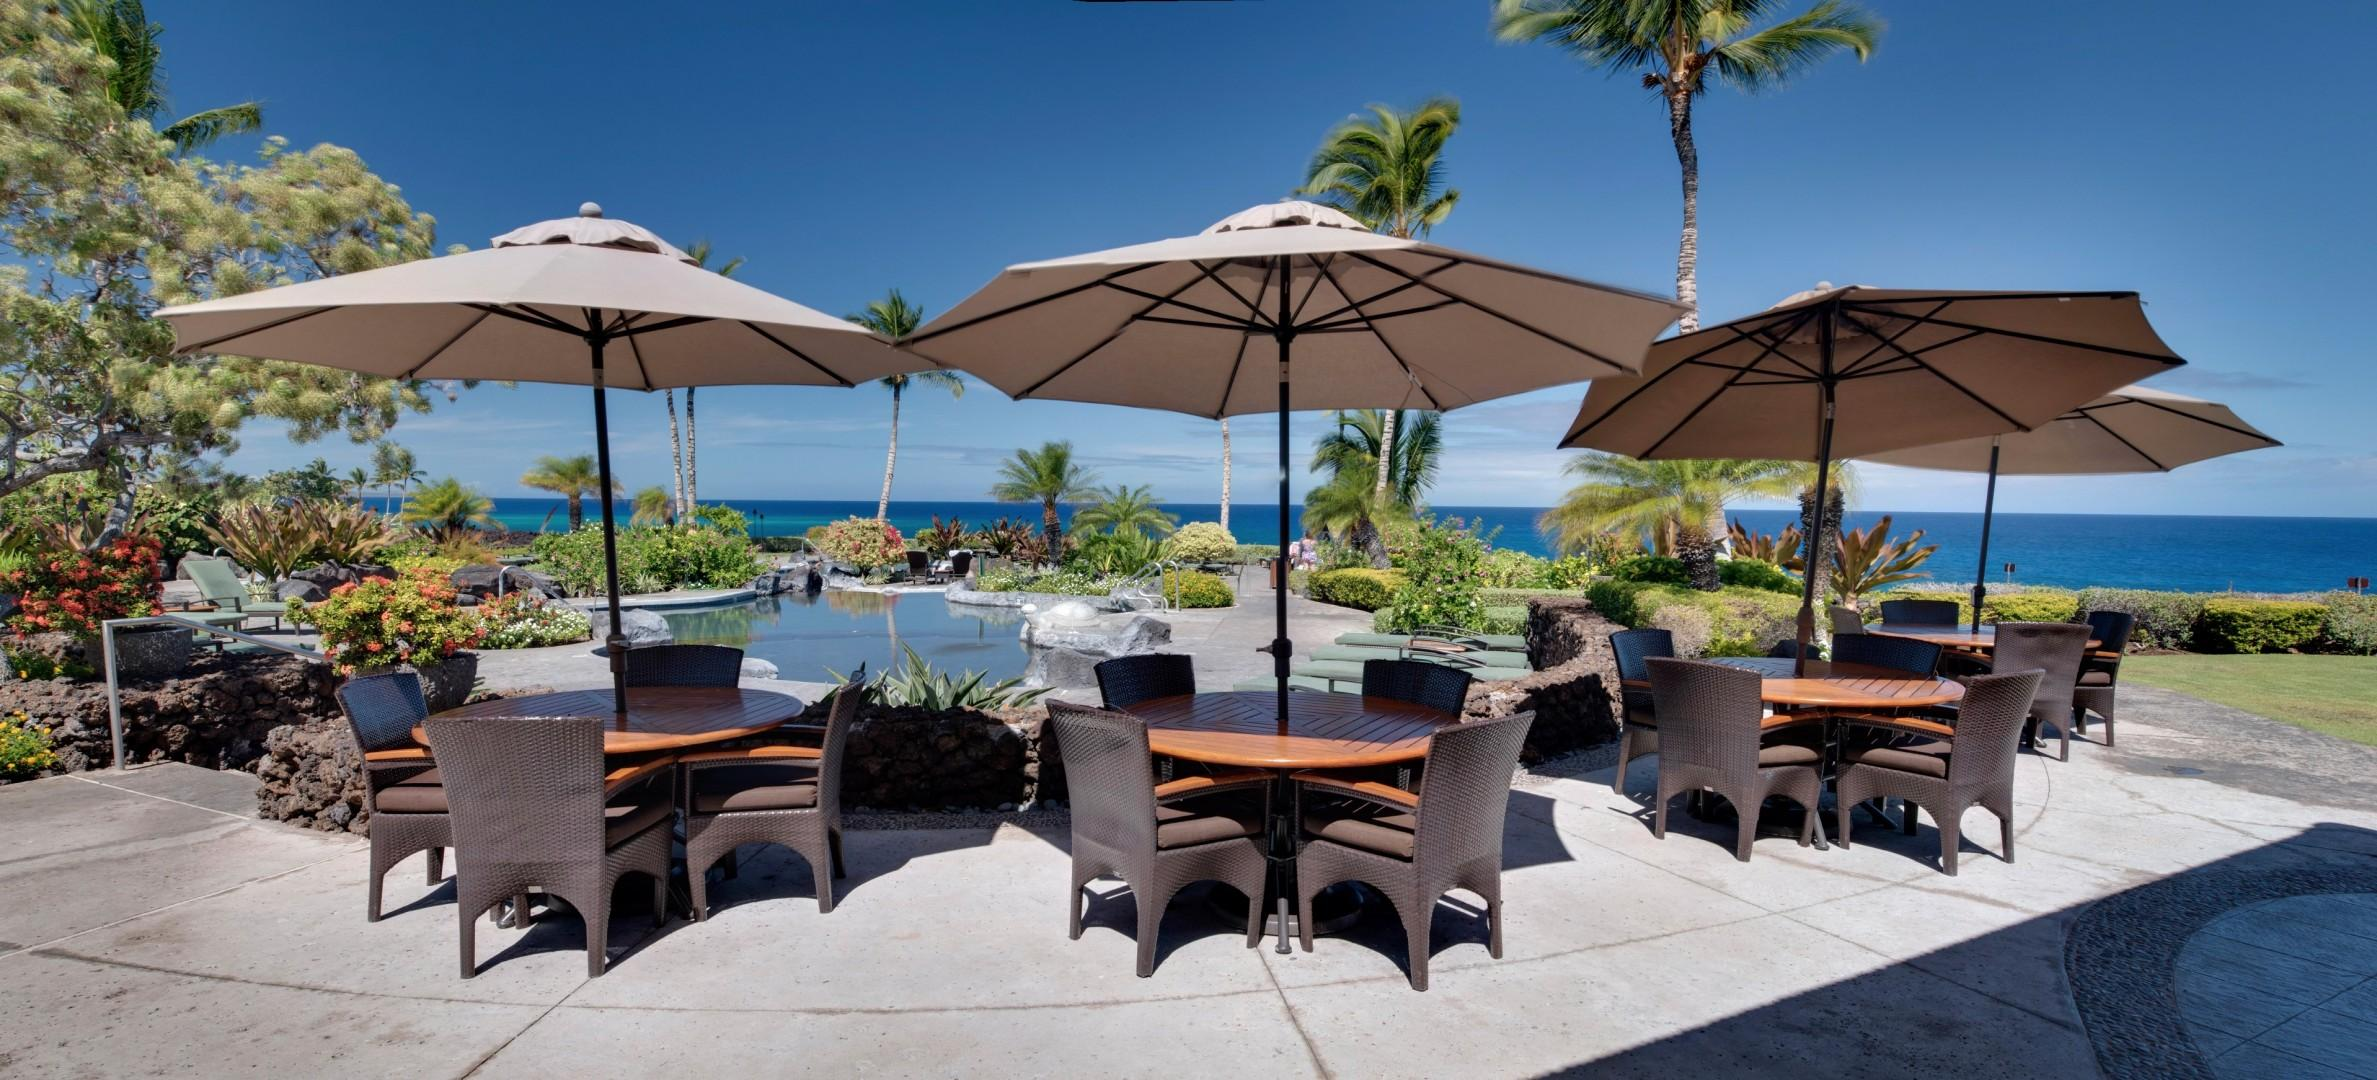 Al fresco dining by the pool and ocean at Hali'i Kai Resort's private Ocean Club Bar & Grille